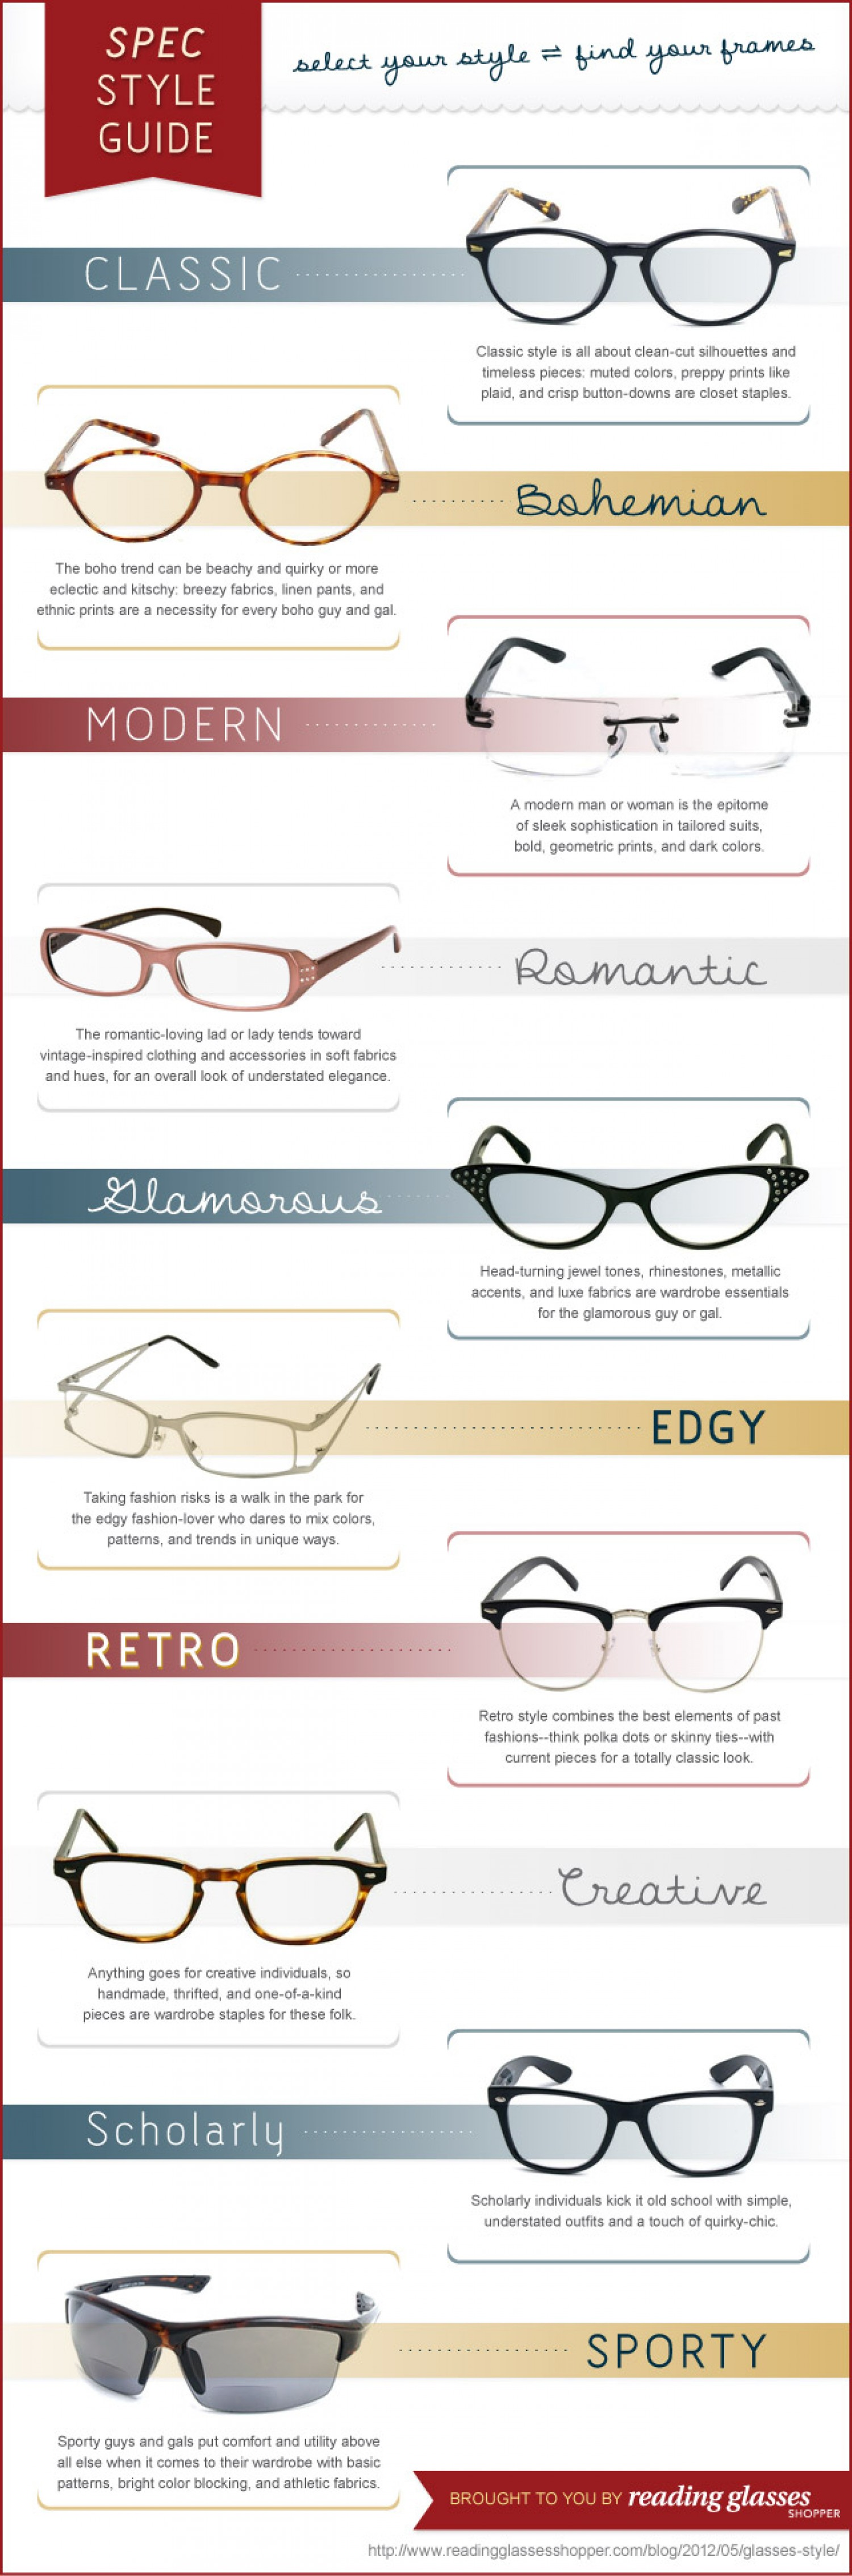 spec-style-guide-by-reading-glasses-shopper_5029189705153_w1500